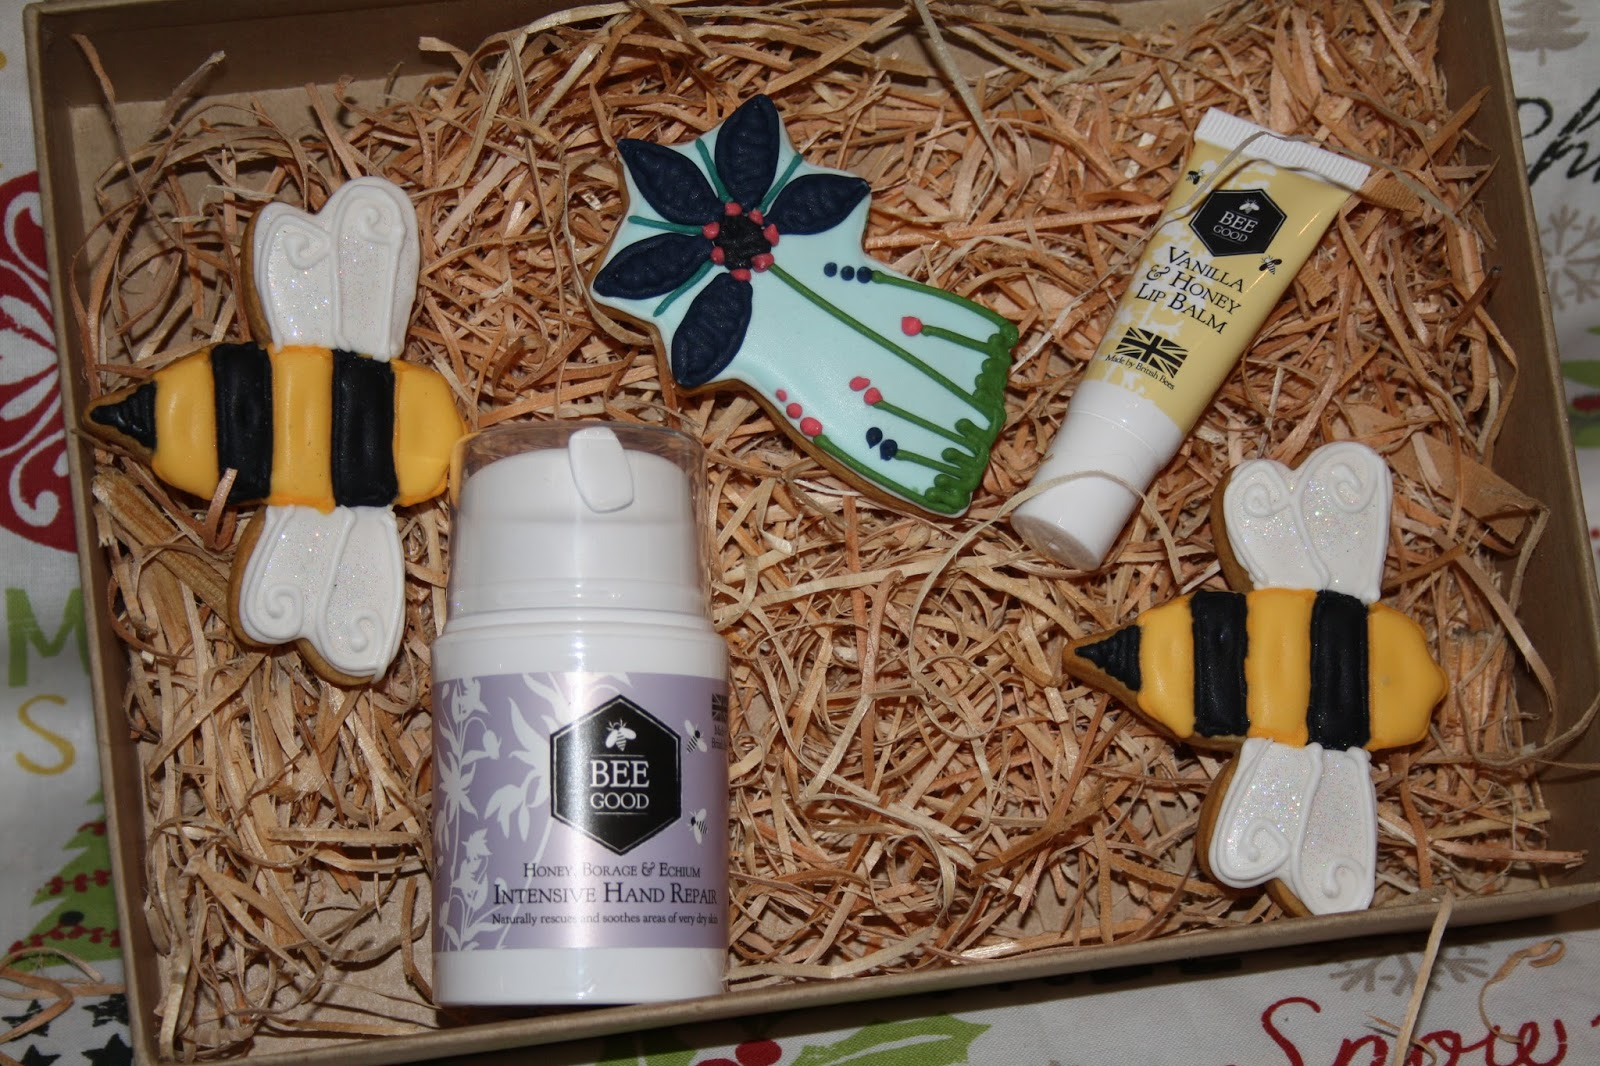 Bee Good Bee Pampered Contents